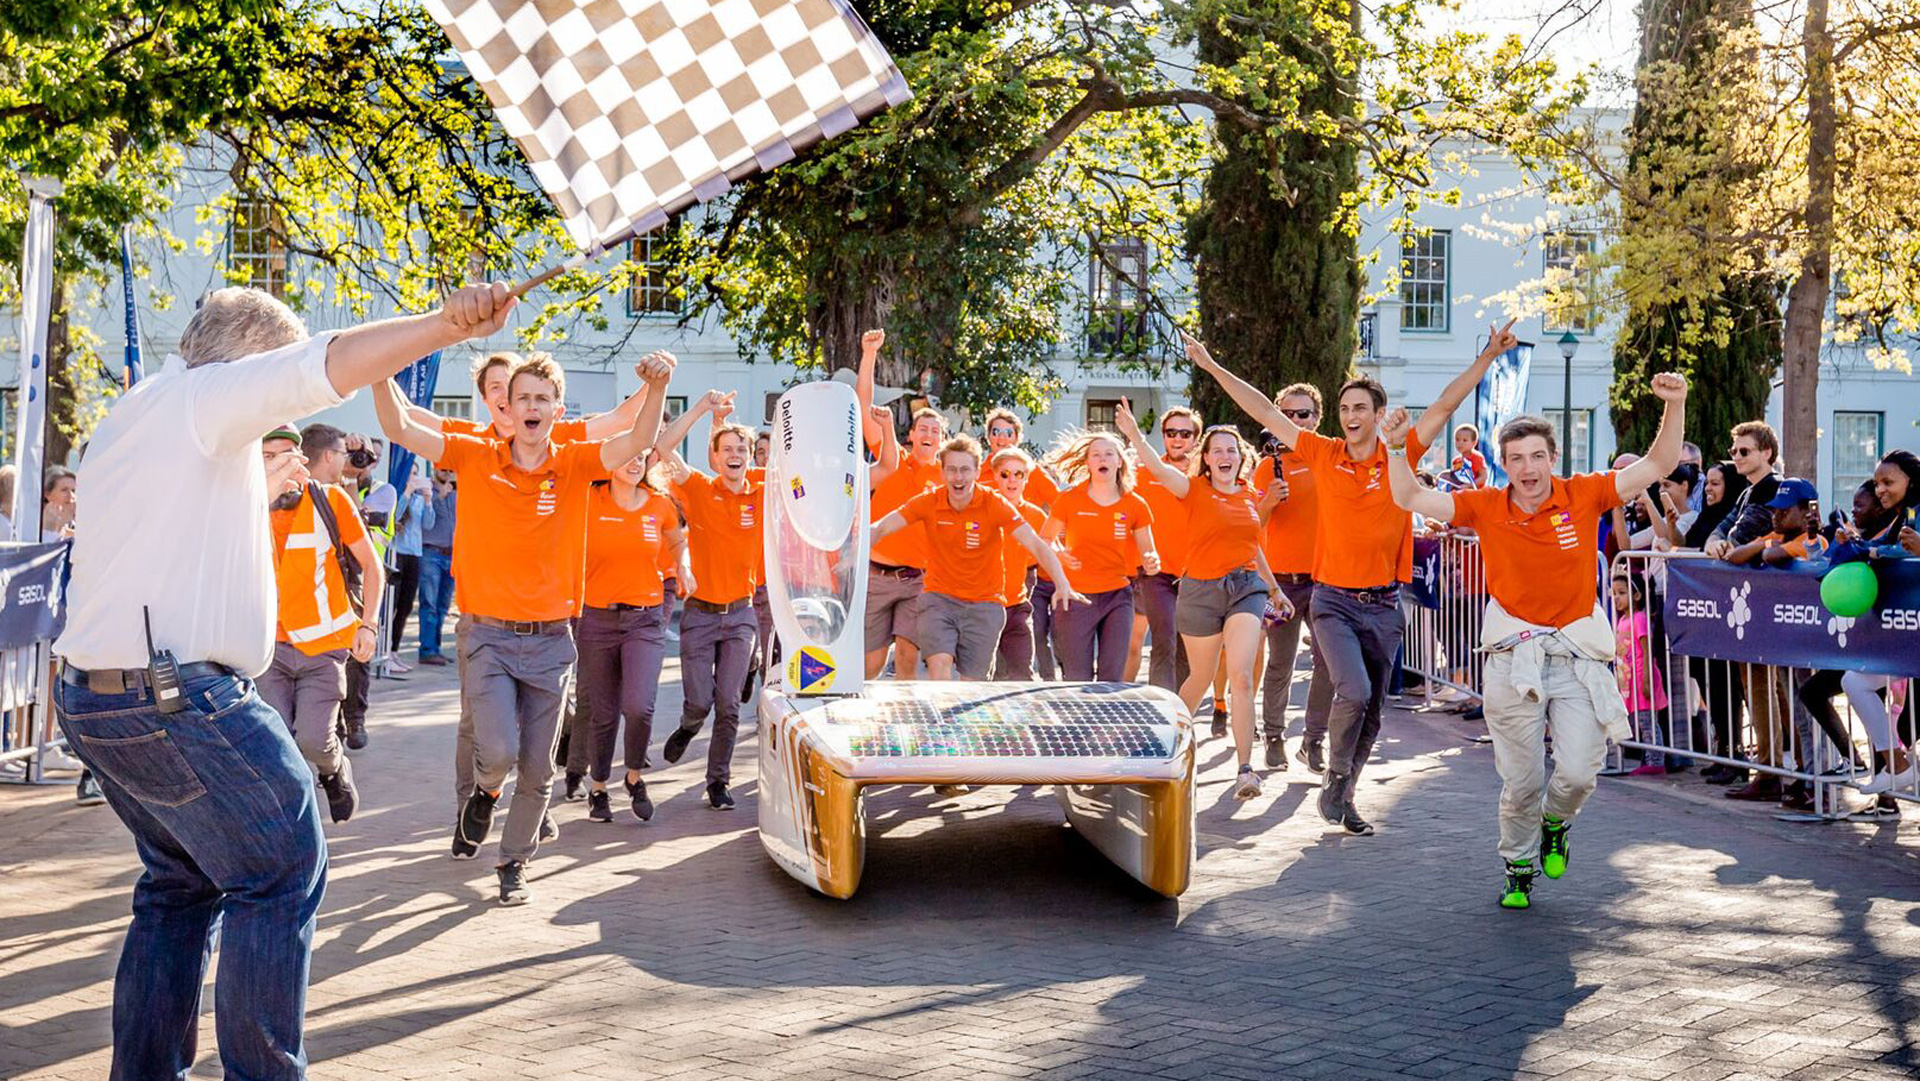 Nuon Solar Team were crowned winners in the solar car race held in South Africa - Nuna9s